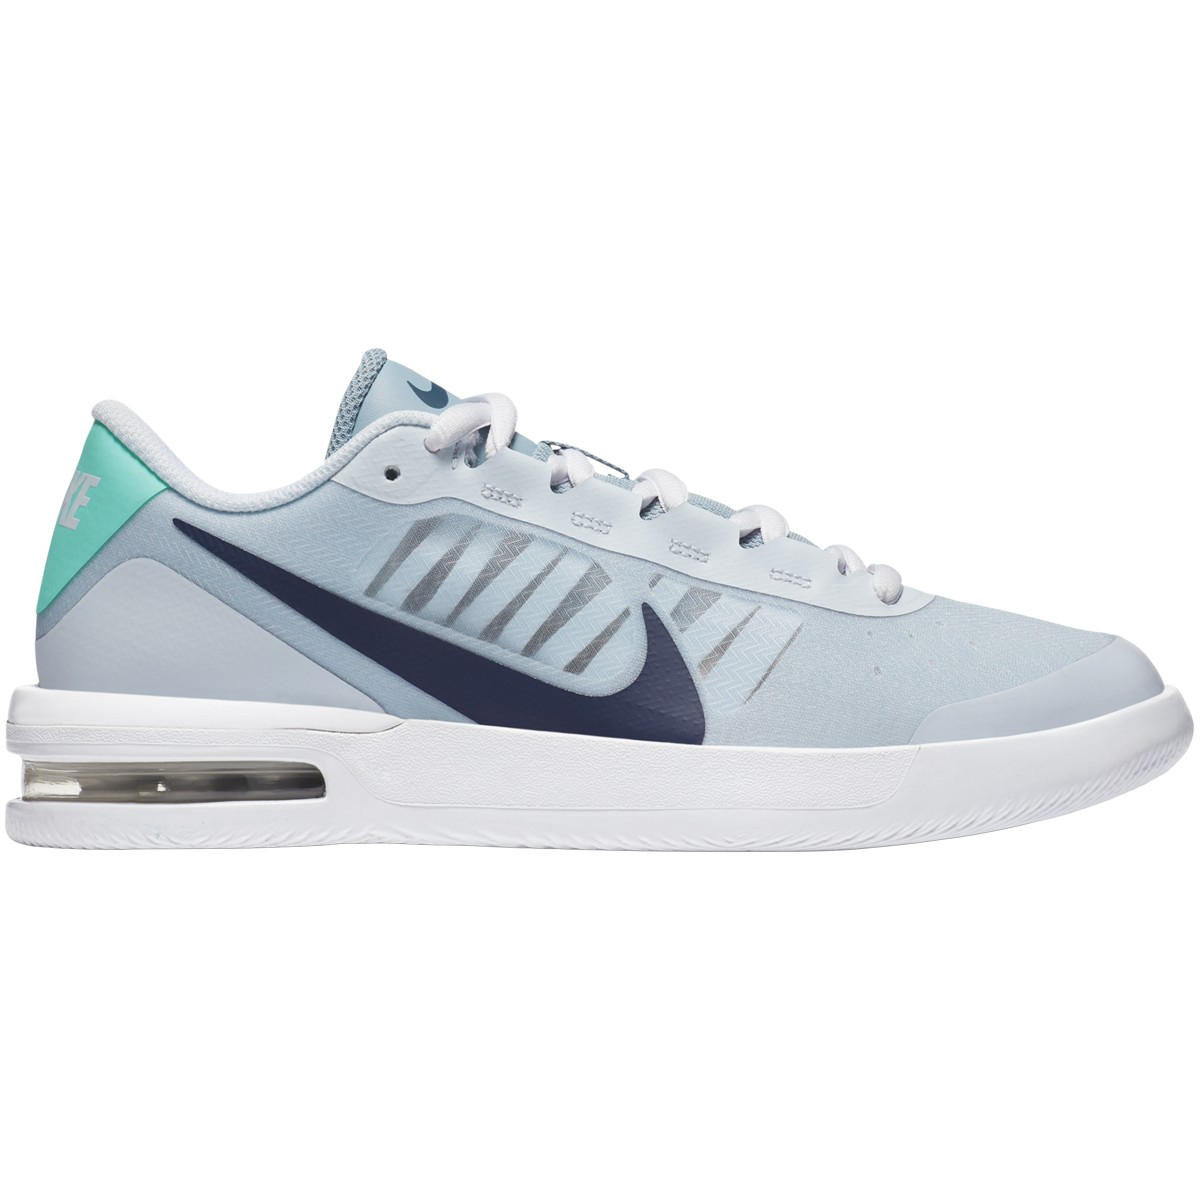 WOMEN'S NIKE AIR VAPOR WING ALL COURT SHOES